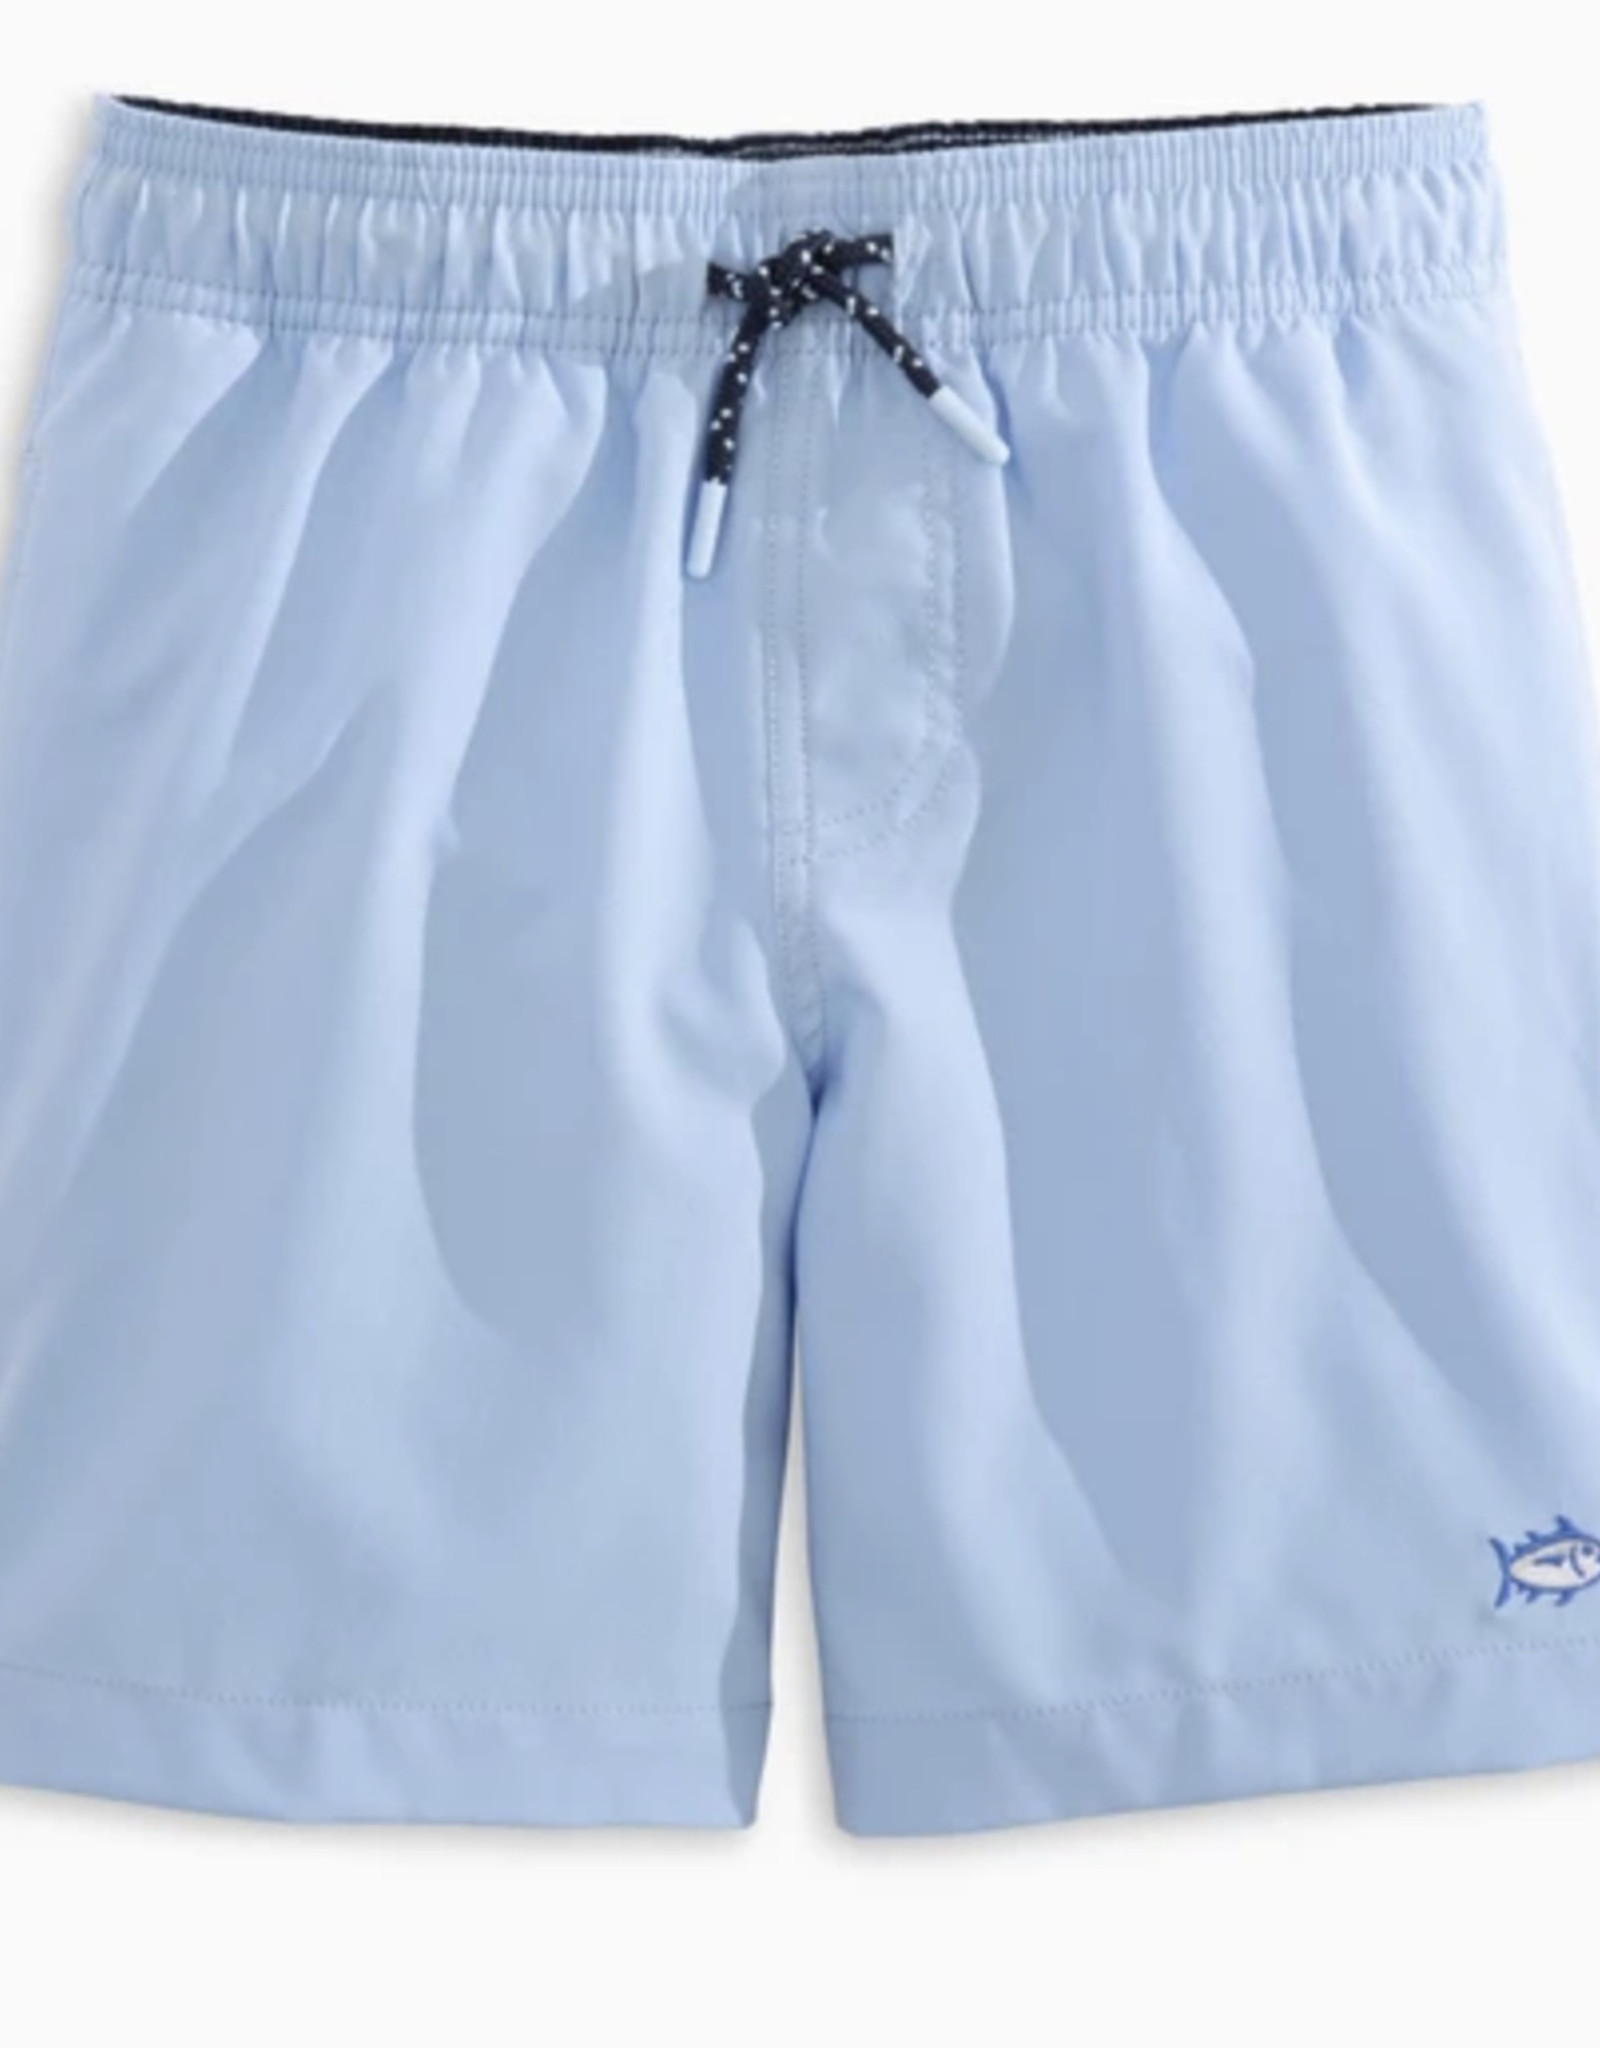 Southern Tide Solid Swim Trunks